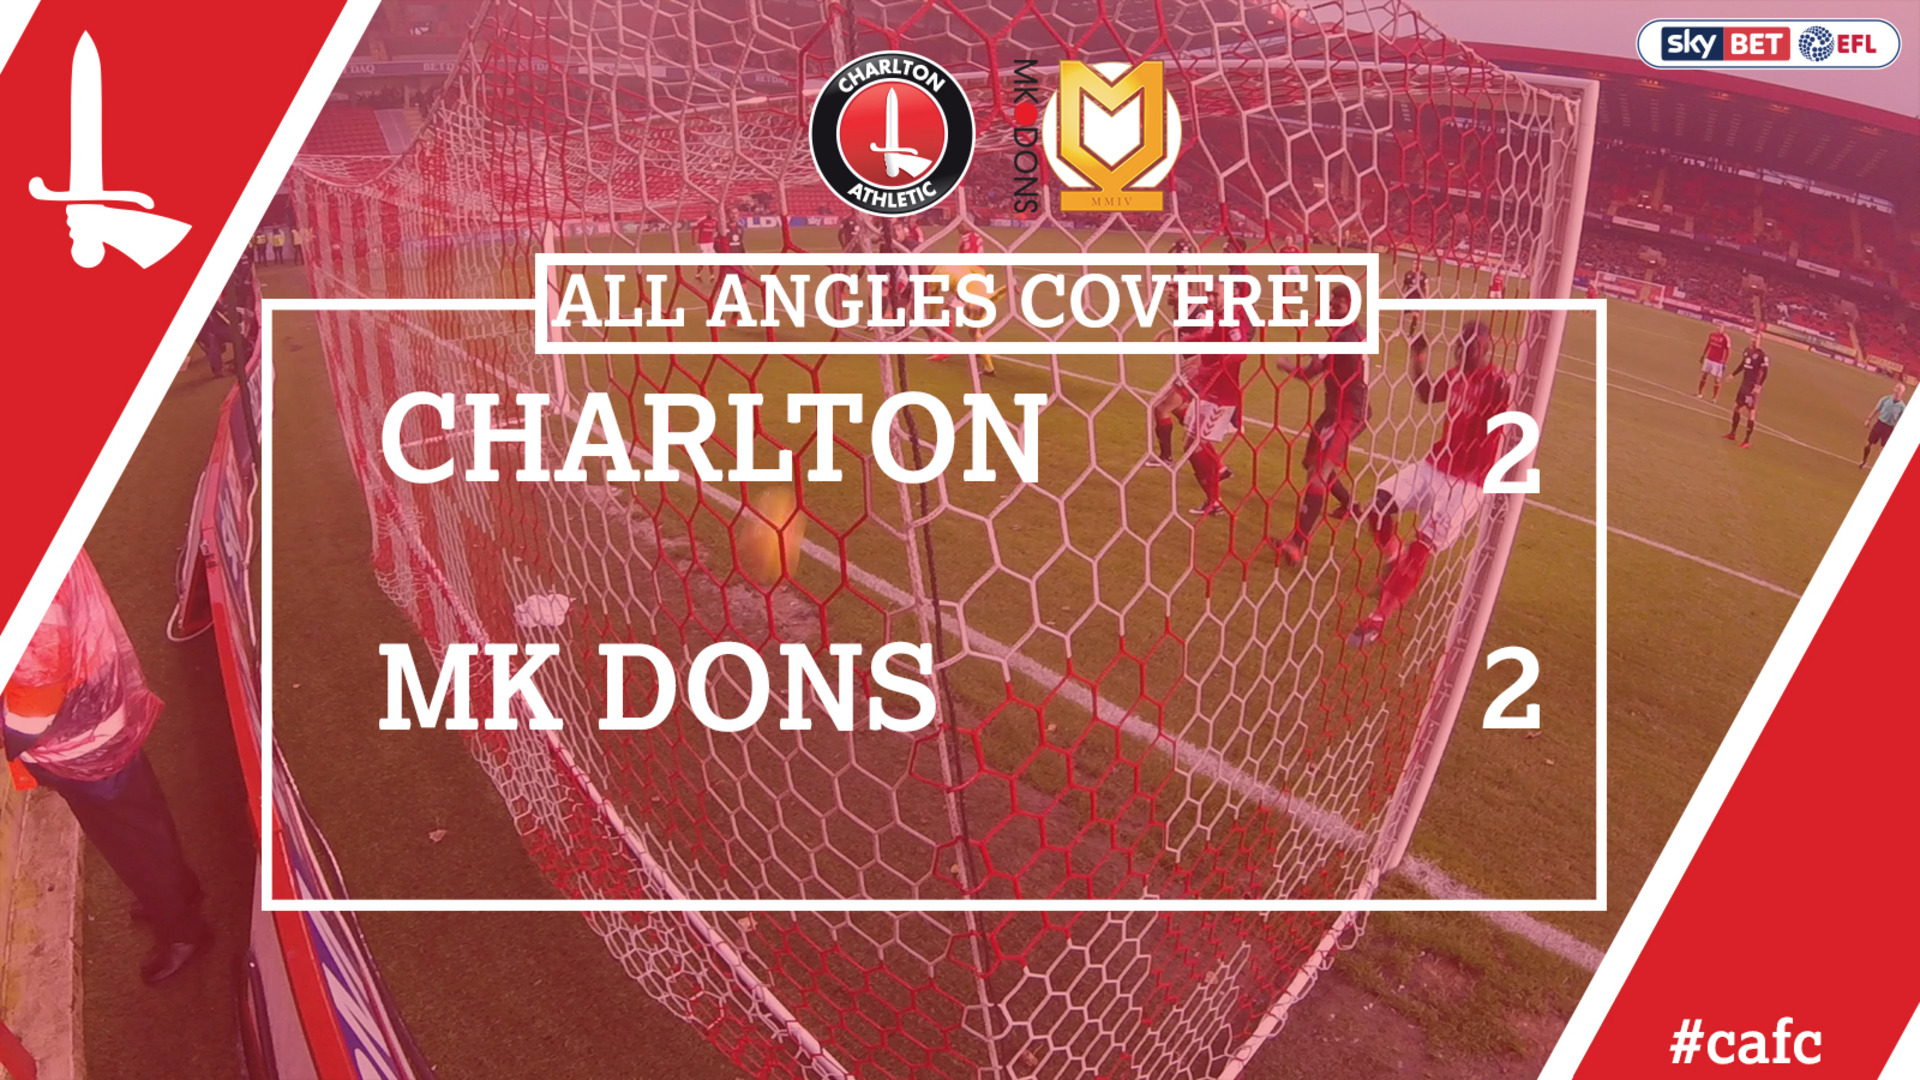 ALL ANGLES COVERED | Charlton 2 MK Dons 2